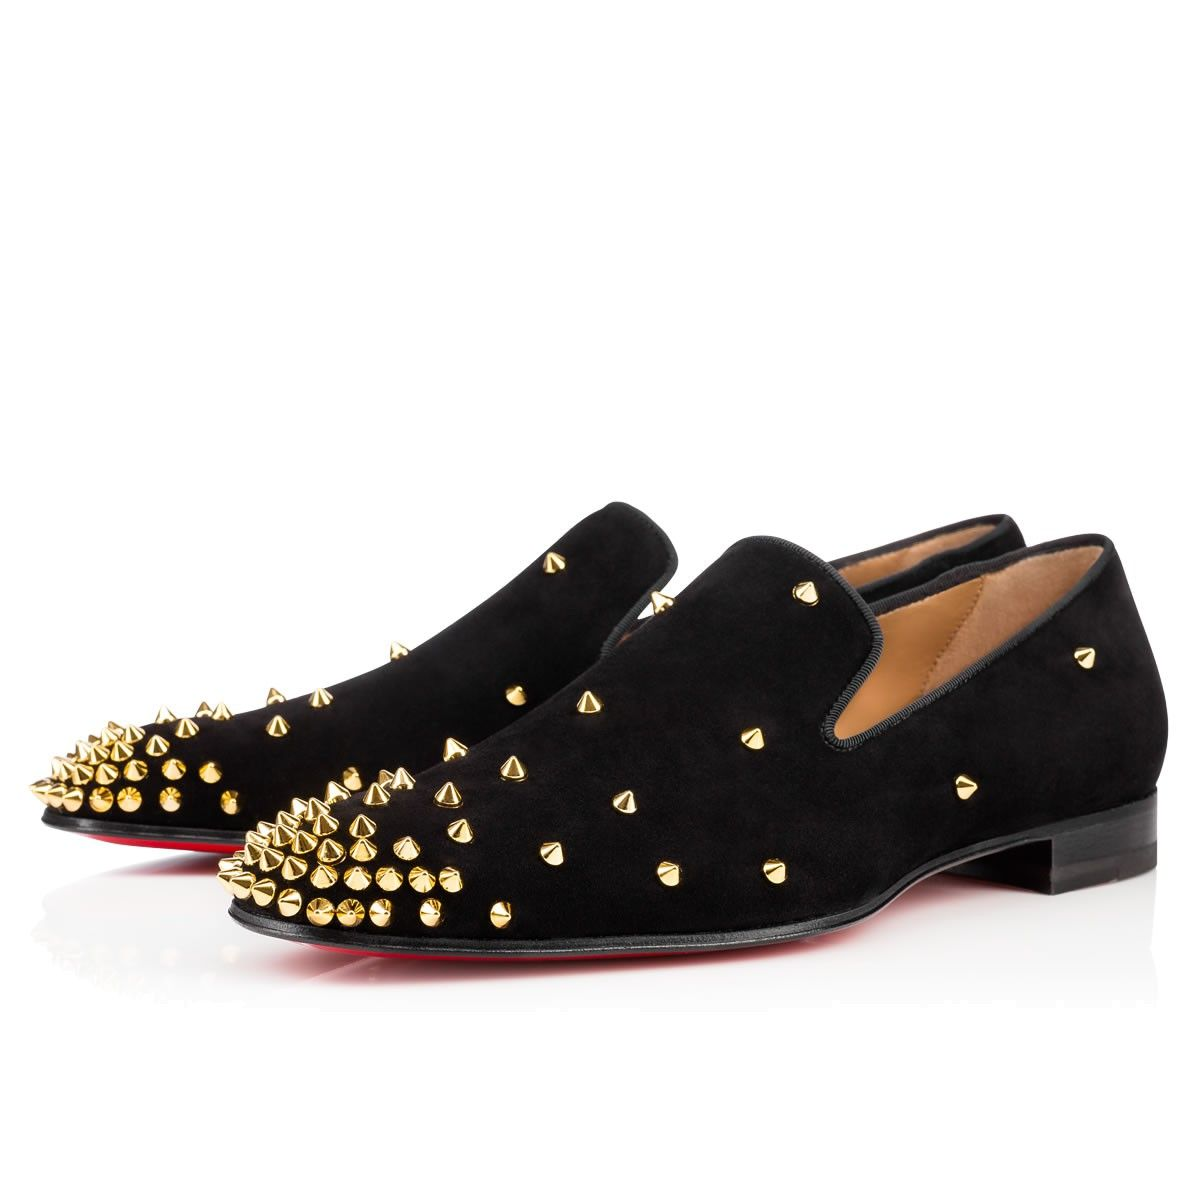 aed5d48fe43 Shop CHRISTIAN LOUBOUTIN , starting at €0. Similar ones also ...